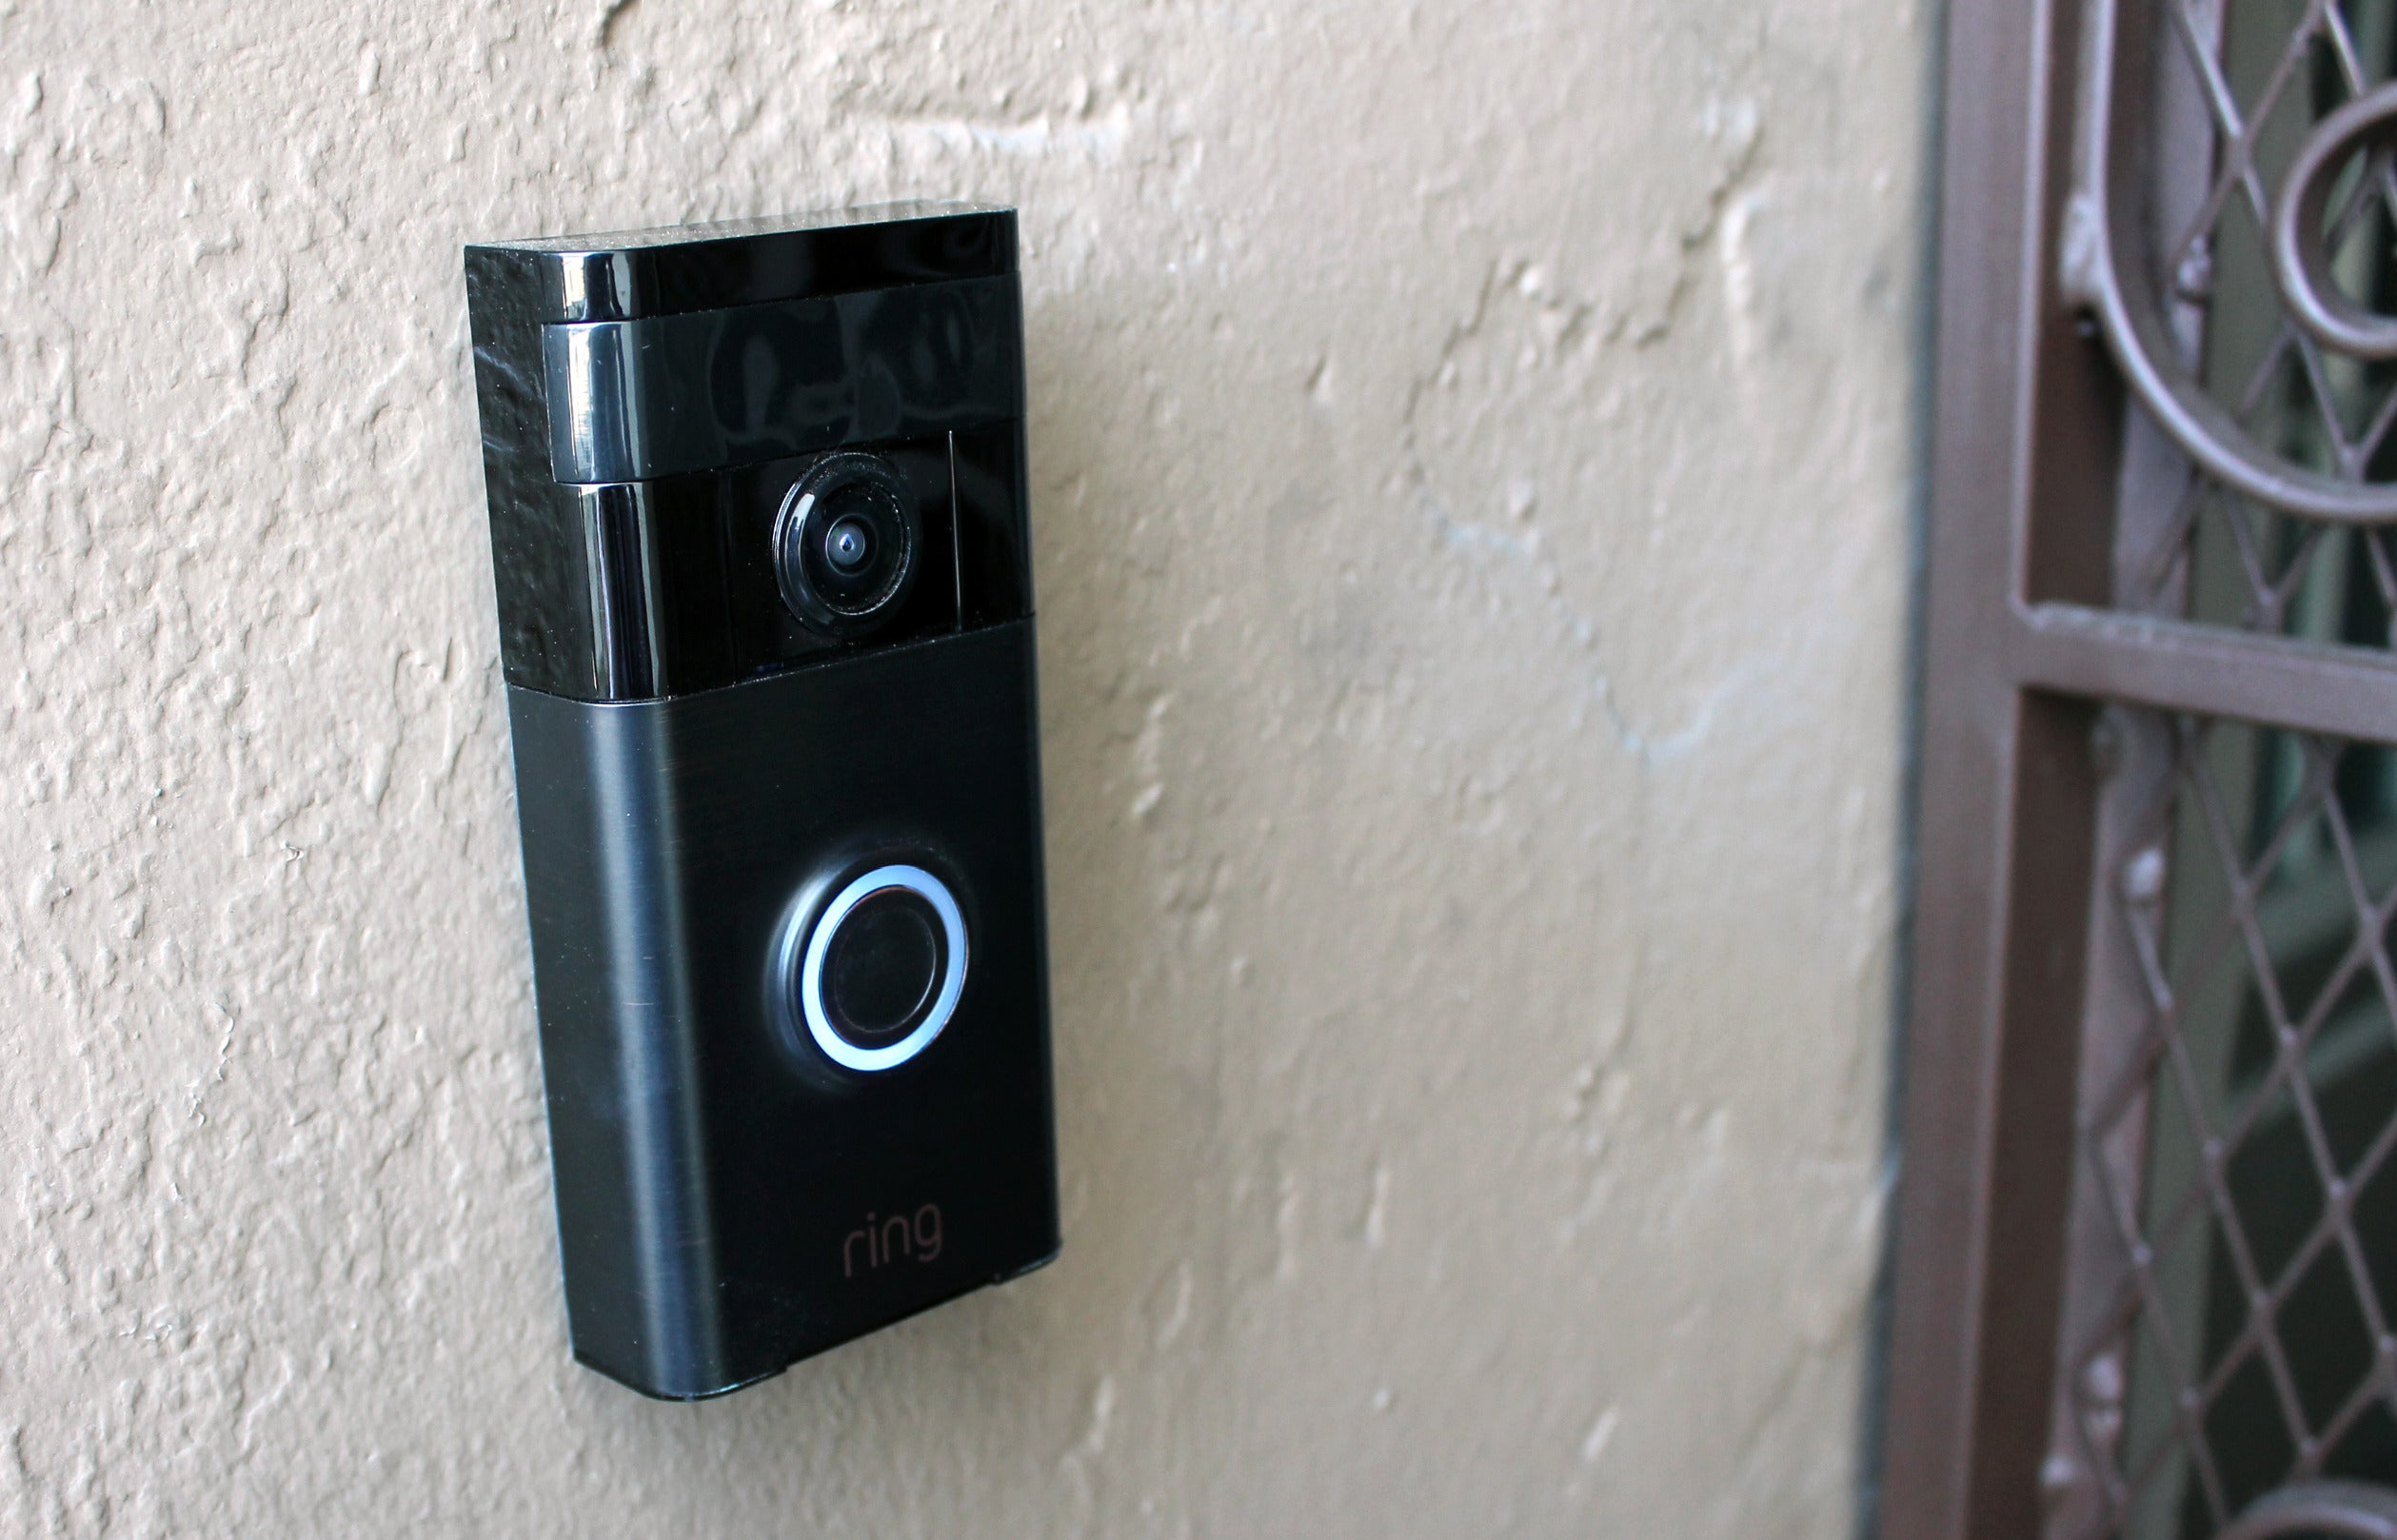 ring video doorbell review this gadget makes crooks think you 39 re home. Black Bedroom Furniture Sets. Home Design Ideas